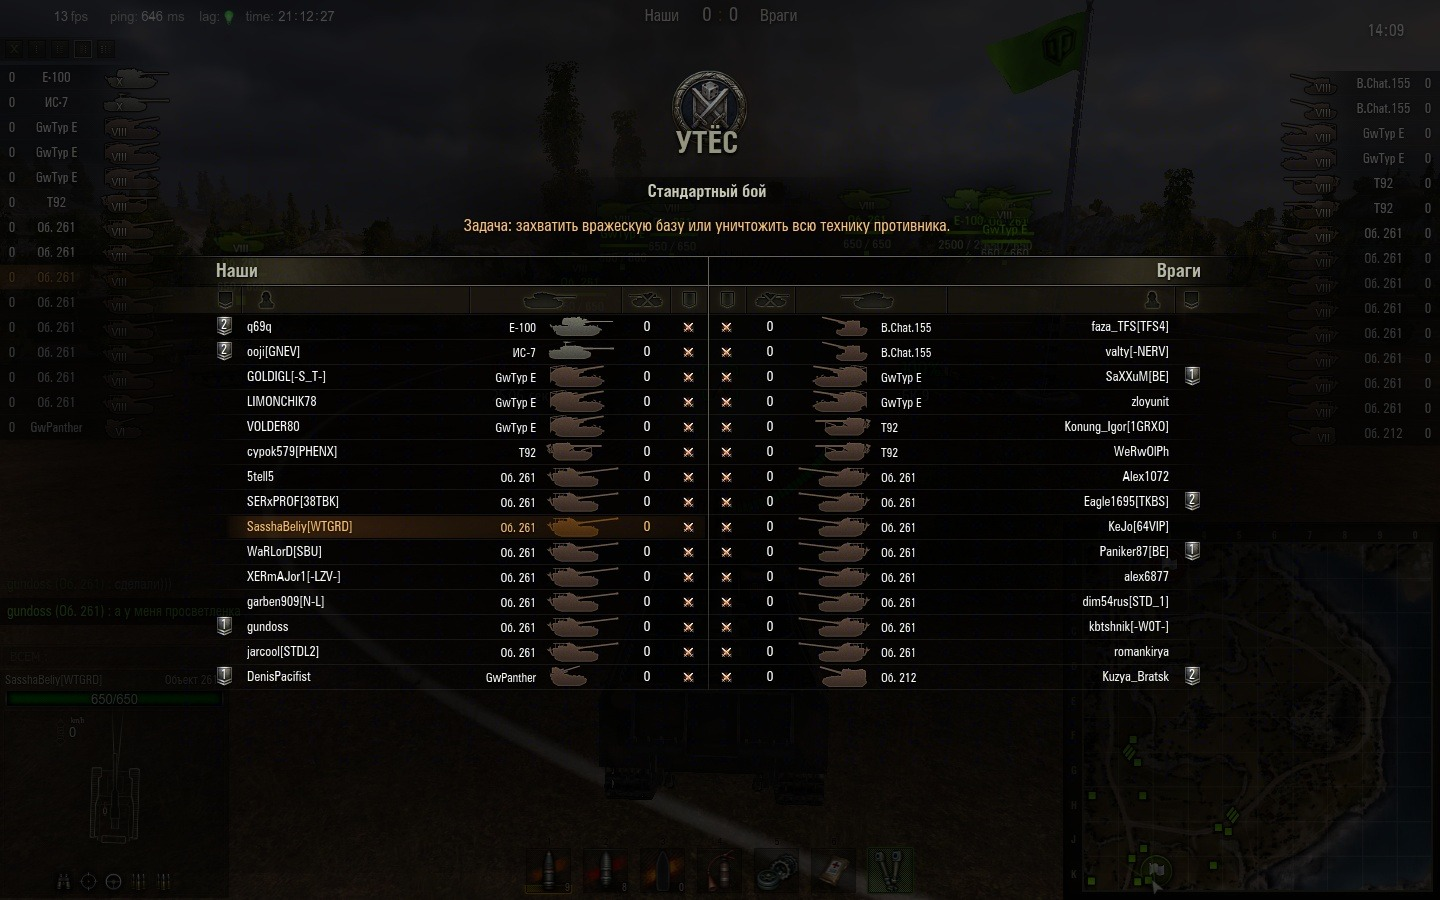 world of tanks matchmaking fixed Find world of tanks advanced tips that help seasoned world of tanks players  enemies can be fixed by setting up  world of tanks match is different.